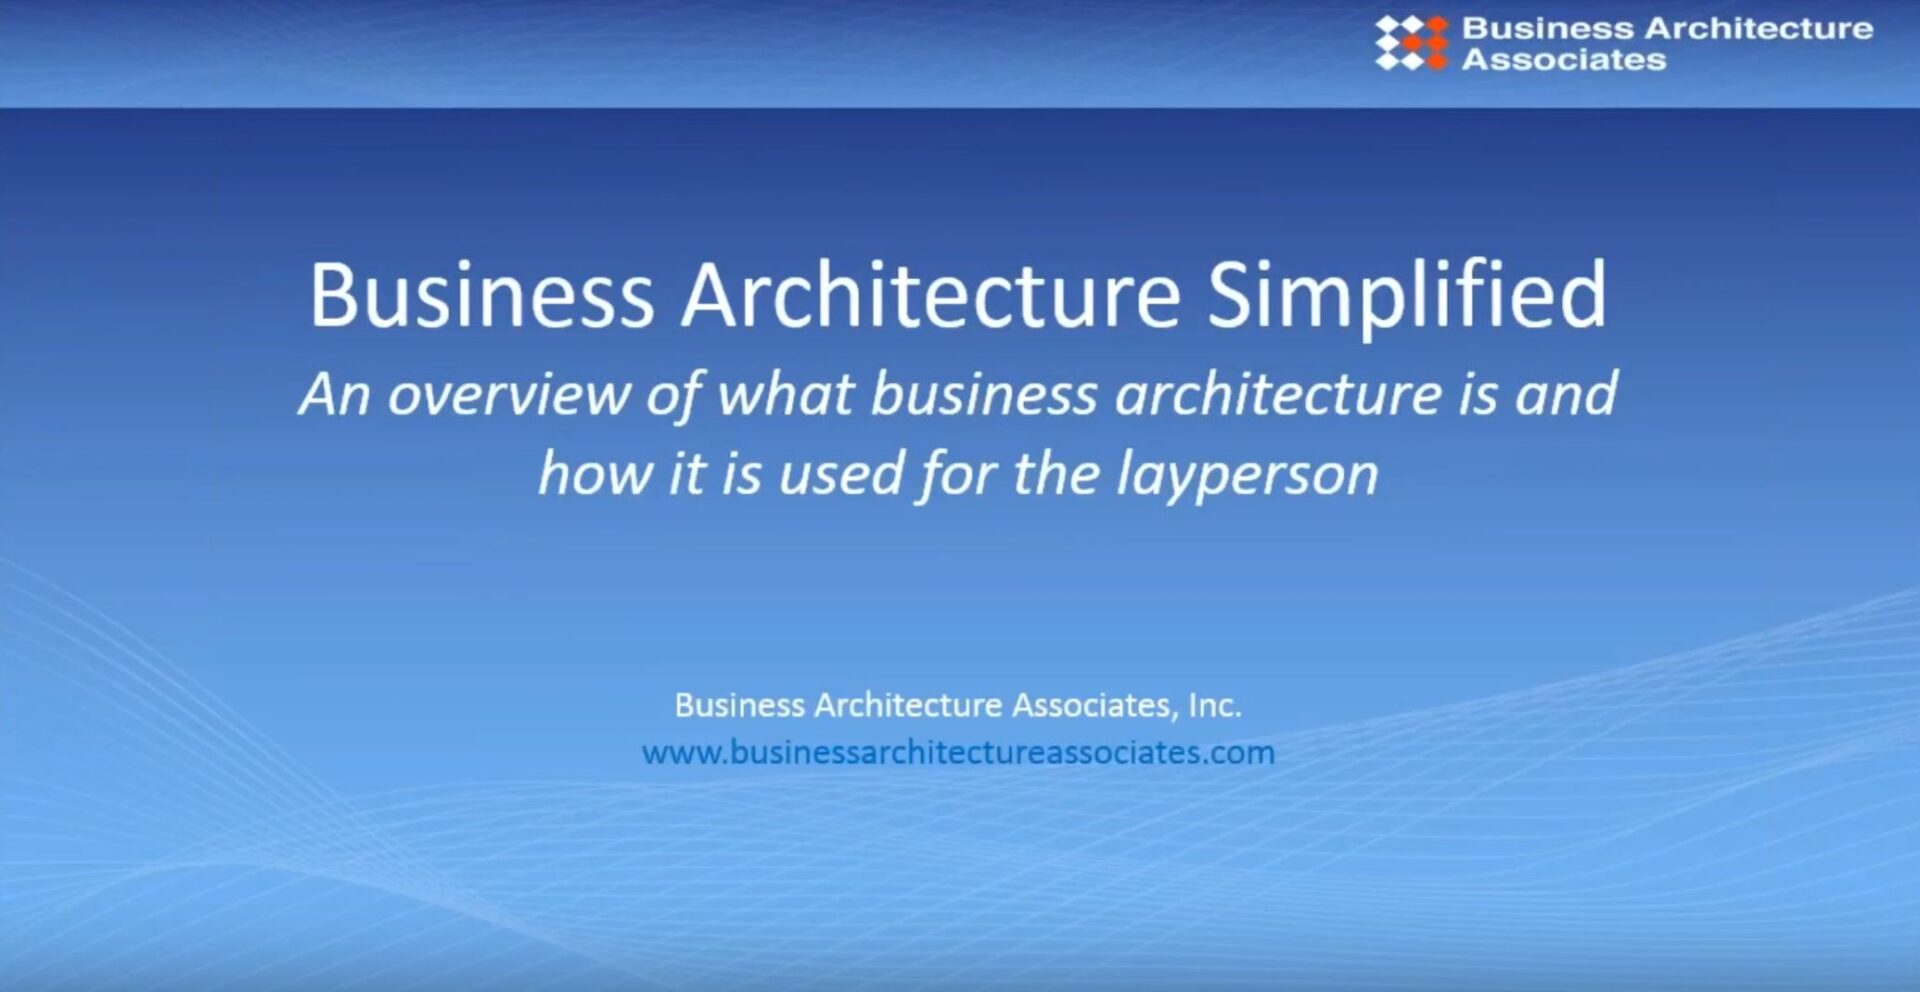 BIZ ARCH SIMPLIFIERED